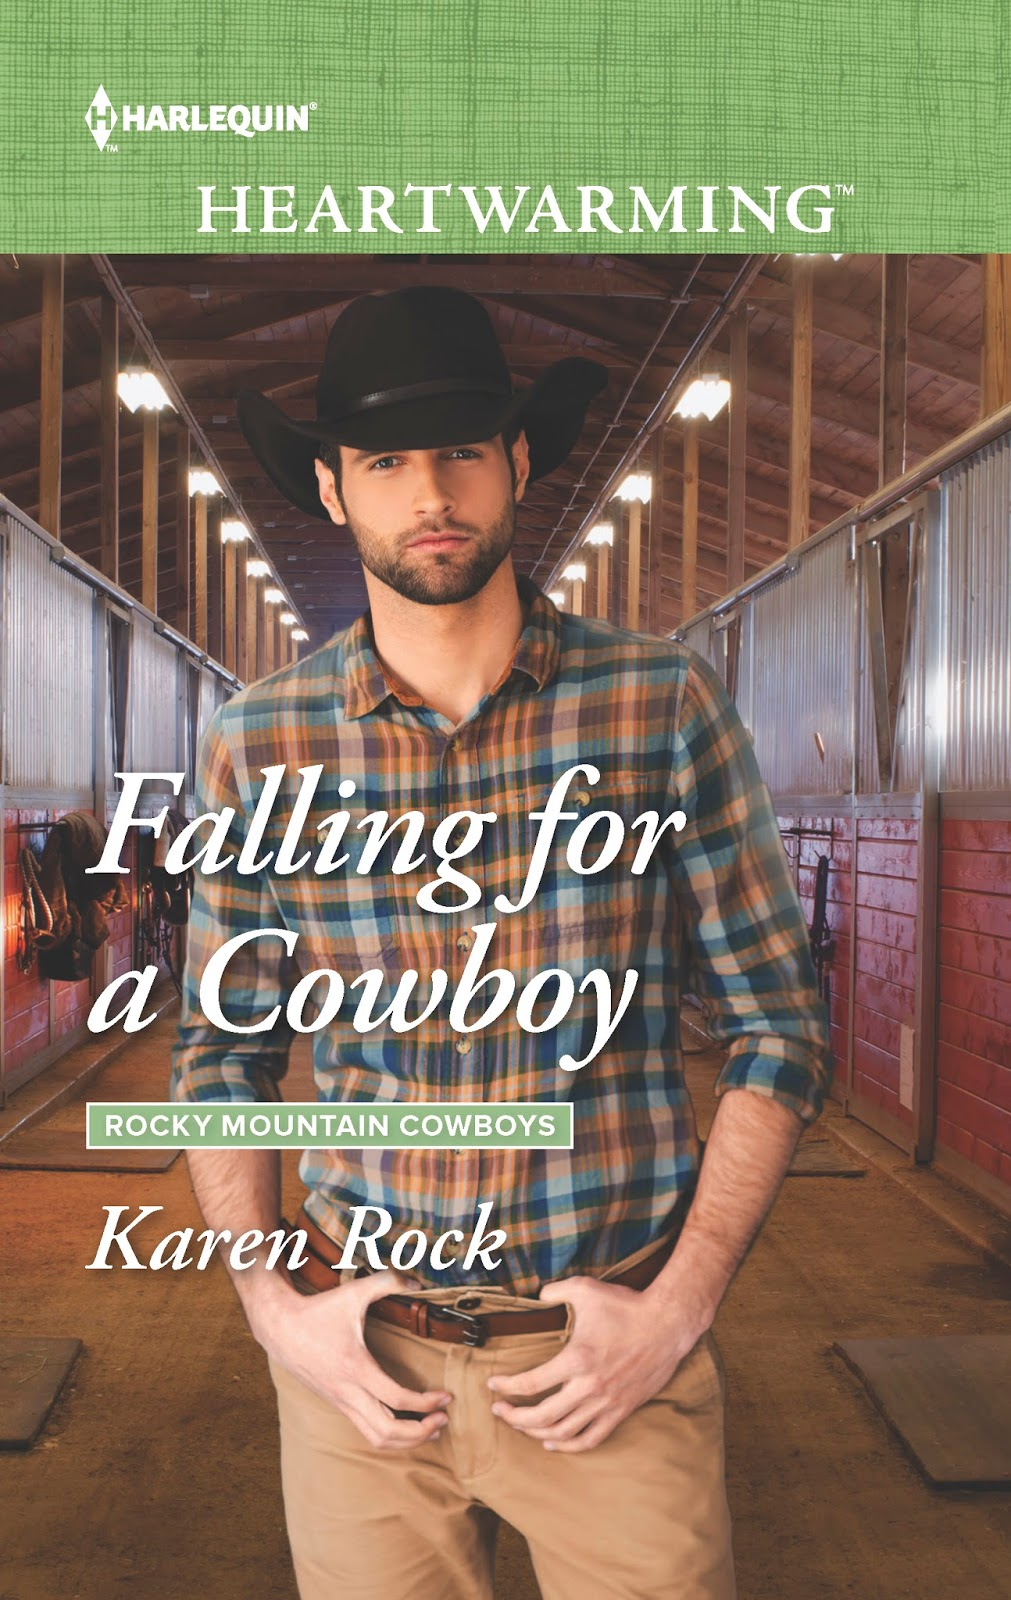 Falling for a Cowboy (Rocky Mountain Cowboys #2) by Karen Rock Contemporary  Romance Paperback & ebook, 368 pages. January 1st 2018 by Harlequin  Heartwarming